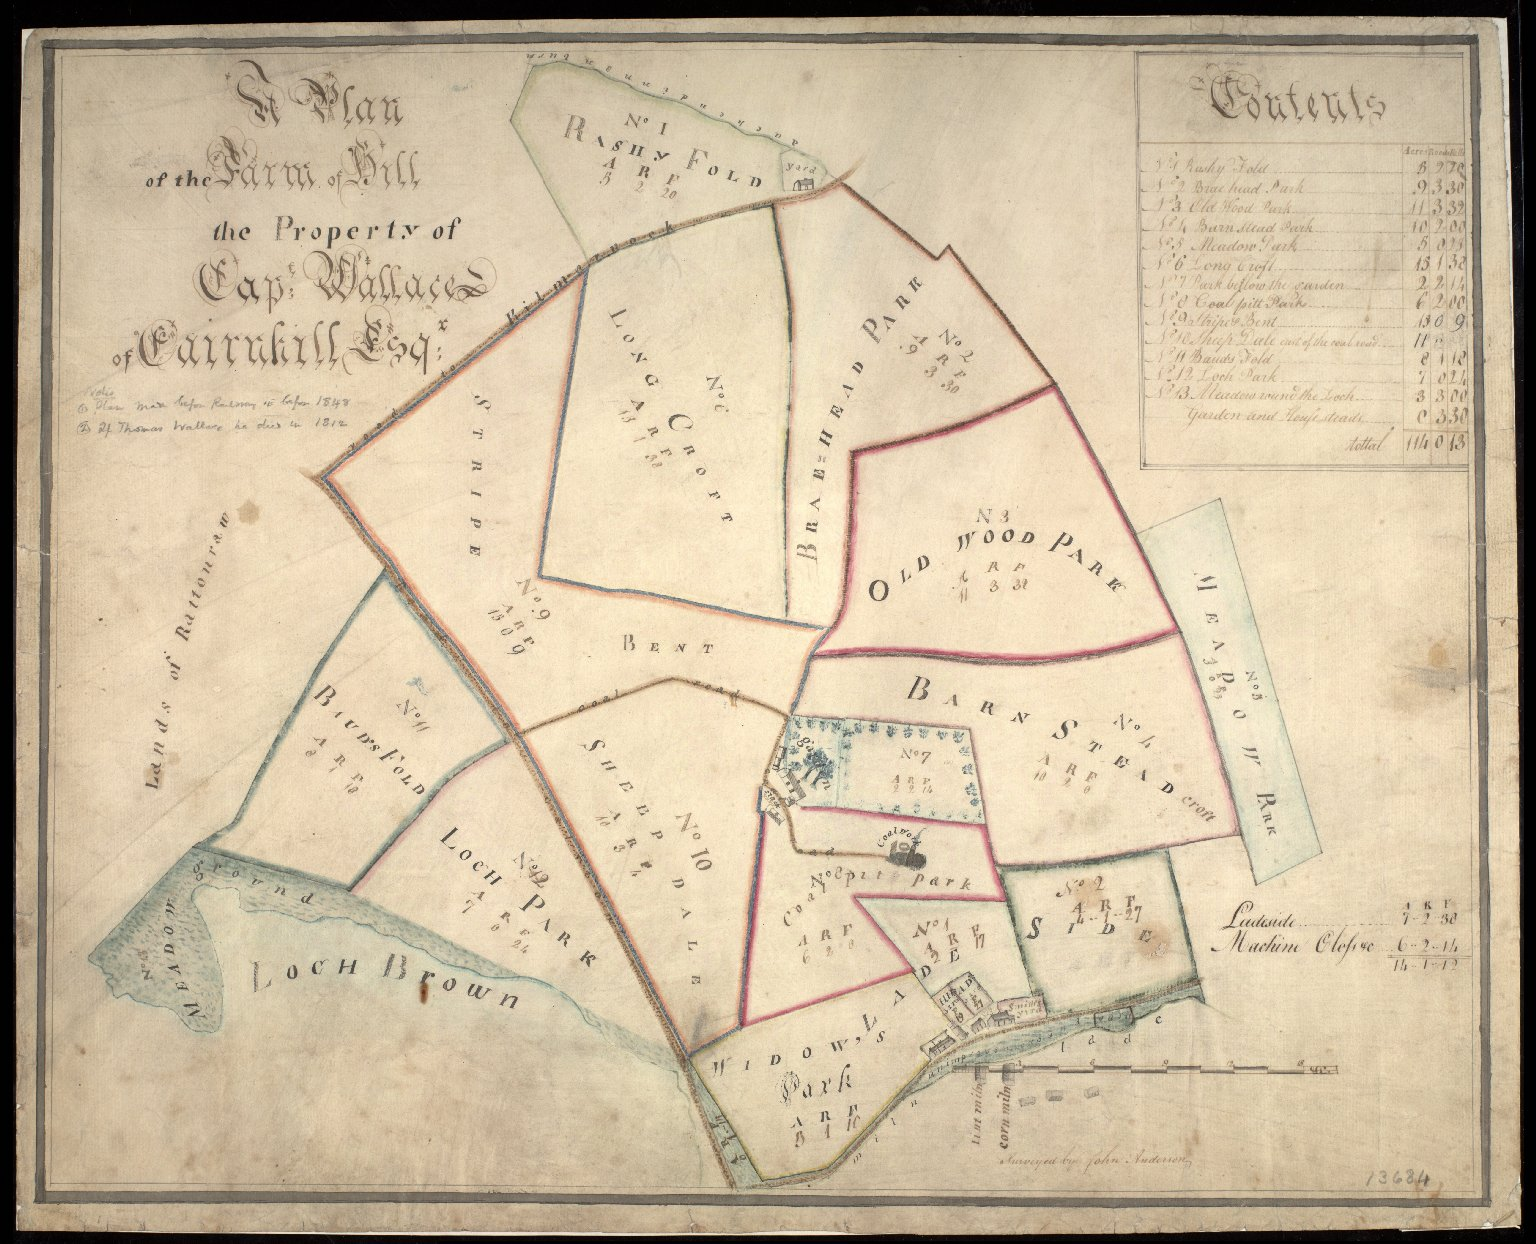 A Plan of the Farm of Hill, the Property of Capt. Wallace of Cairnhill Esq. [1 of 1]